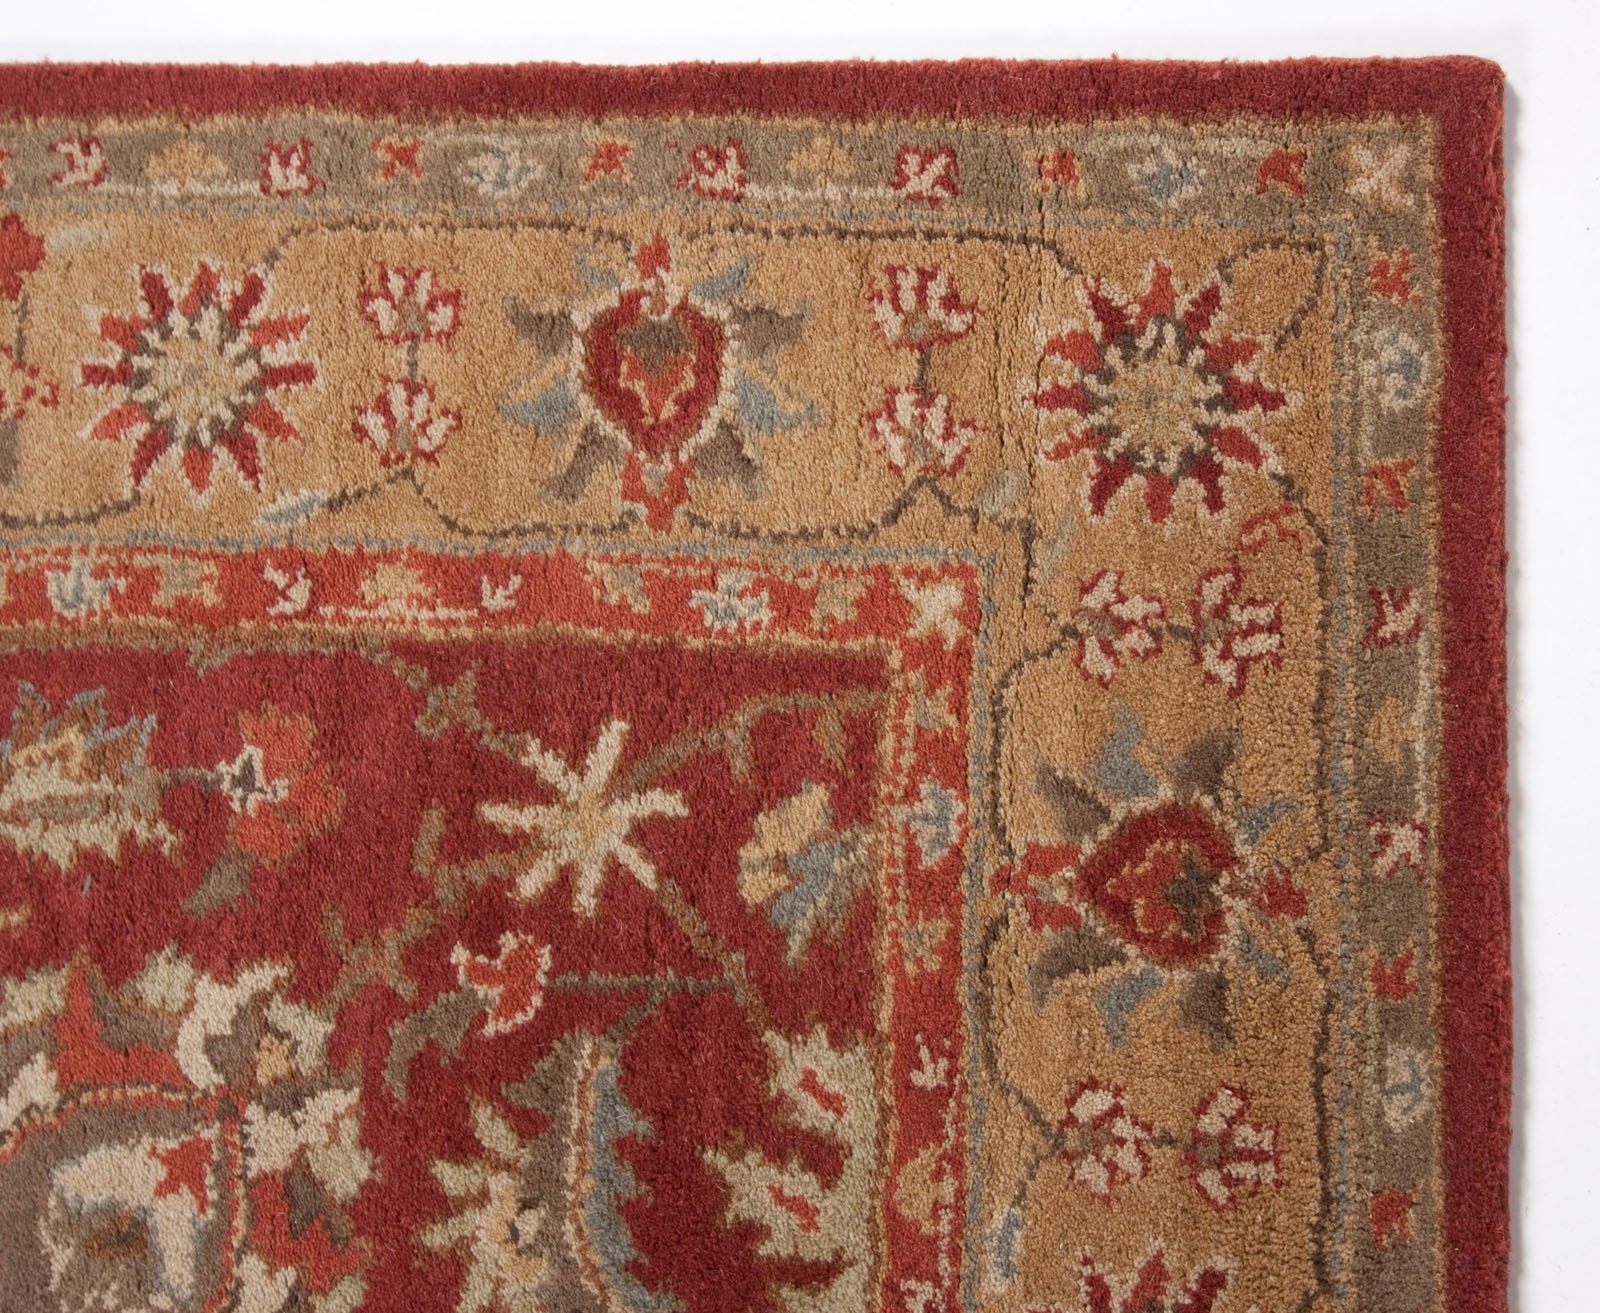 15 Collection Of Wool Area Rugs 5 215 8